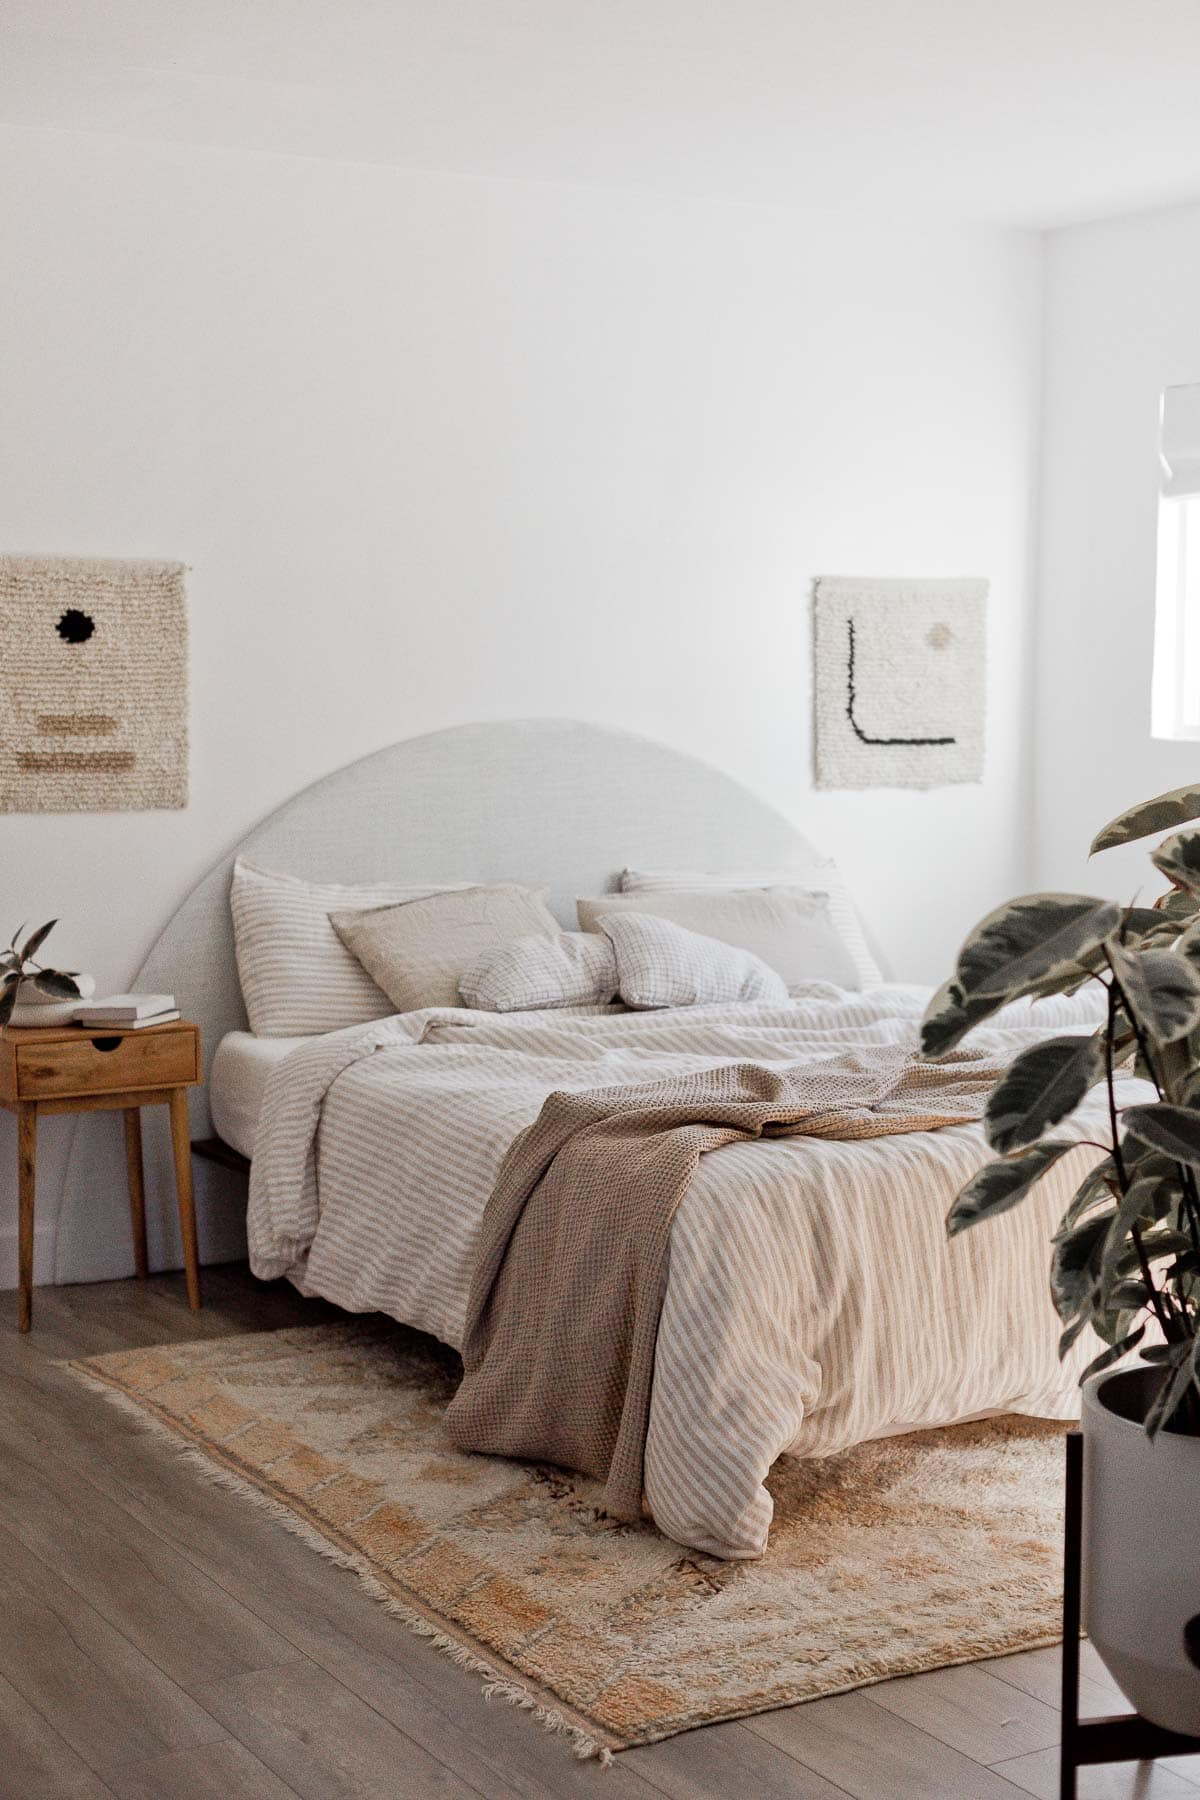 Organic modern bedroom with neutral textiles and unique artwork.